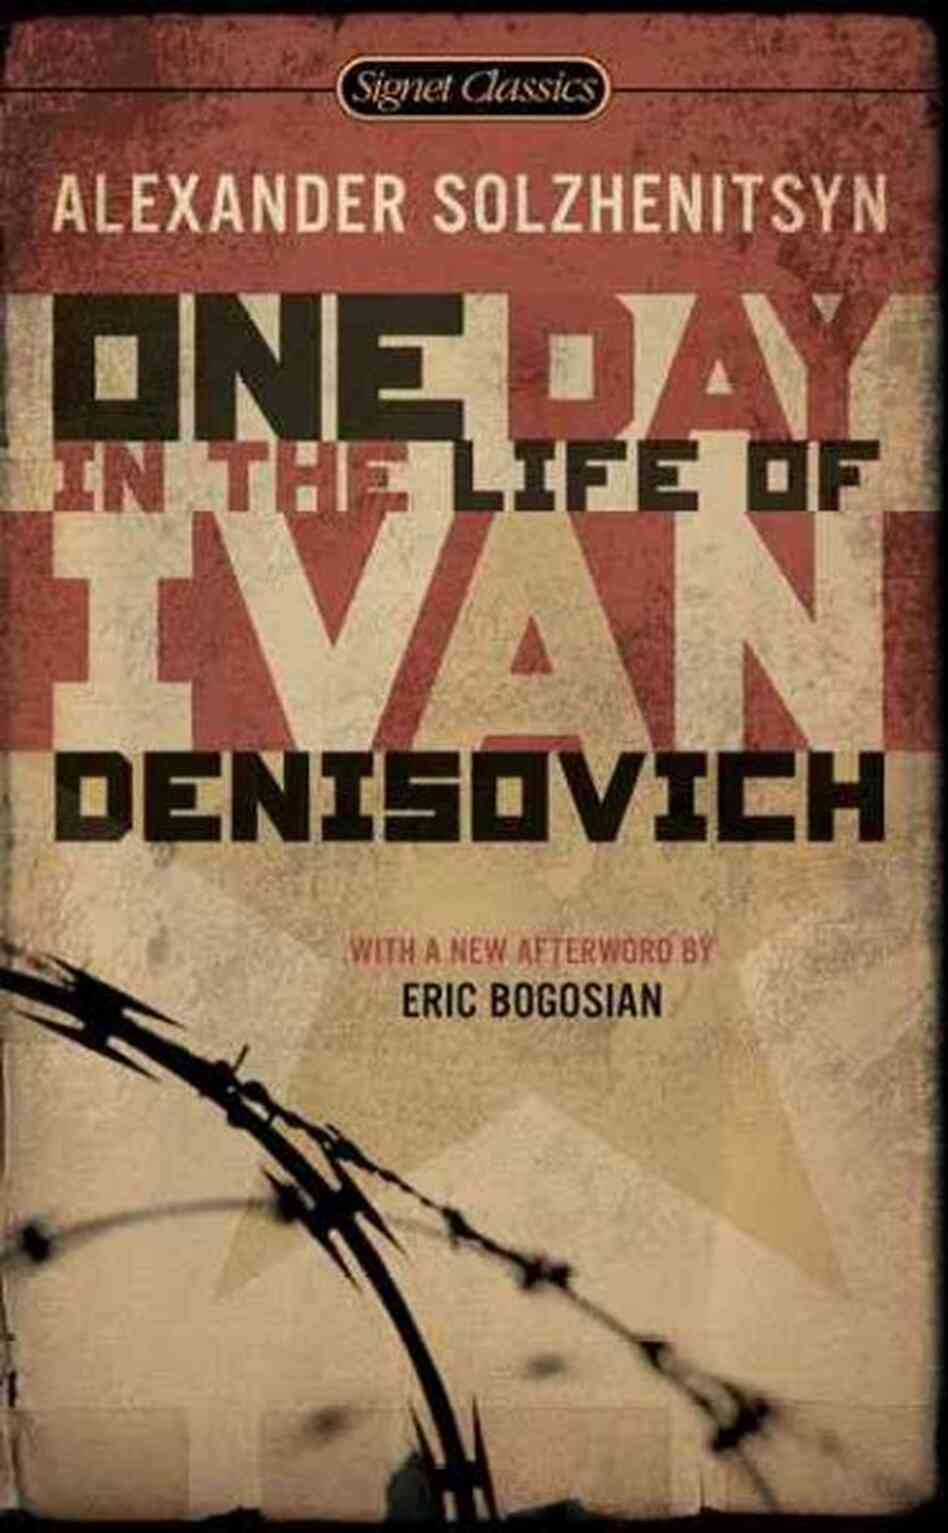 http://media.npr.org/assets/bakertaylor/covers/o/one-day-in-the-life-of-ivan-denisovich/9780451531049_custom-e147a8d92cbd6b54bea5d28807c51d348a71a661-s6-c30.jpg